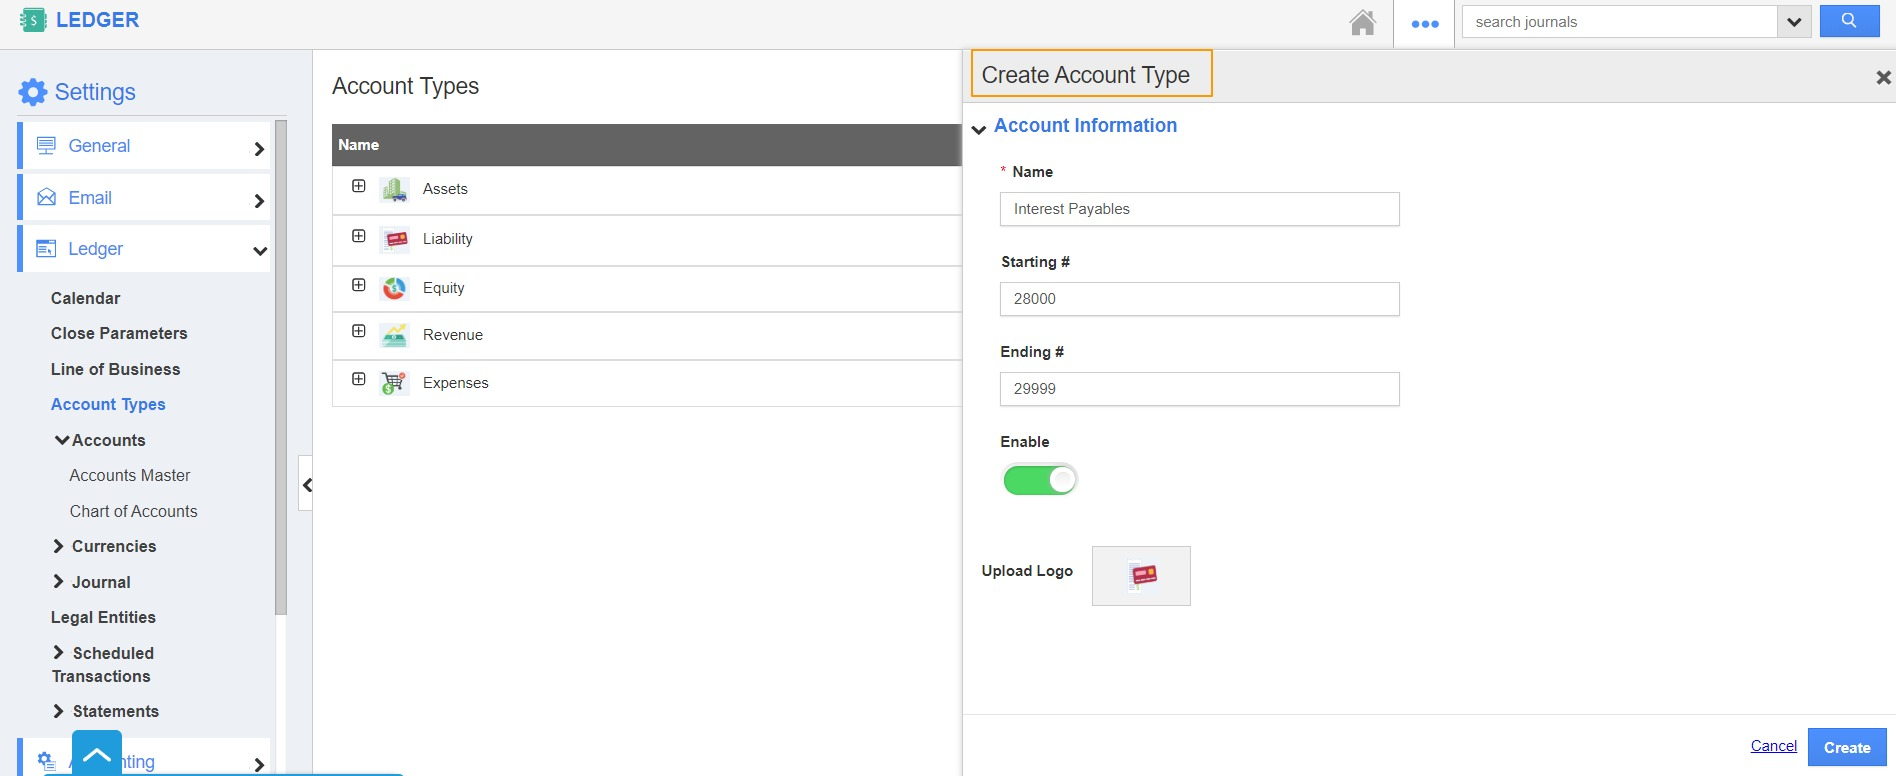 Create Account Type